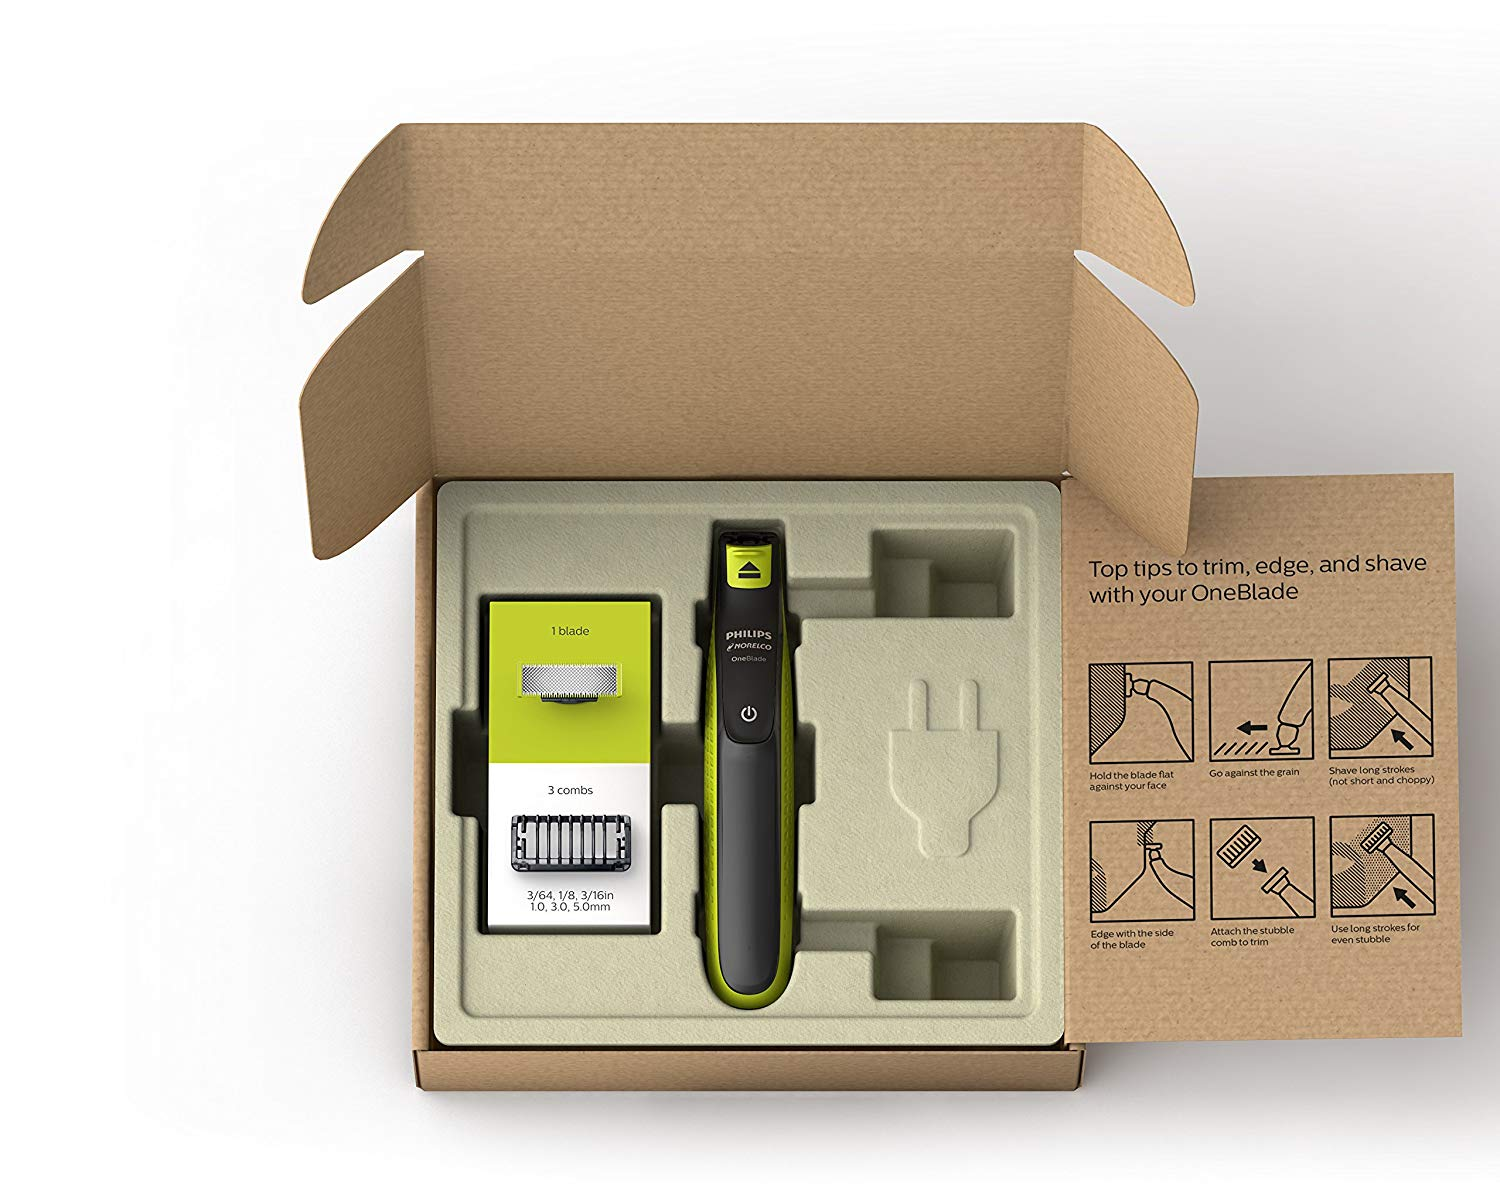 trend: Frustration-free packaging - Amazon has created a new trend in shipping-ready packaging called frustration-free packaging- Combines product packaging and shipping packaging into one- Frustration-free unboxing for the consumer- Reduced material cost for vendor- Reduced shipment cost for fulfilment center- Reduced waste and better experience for customer